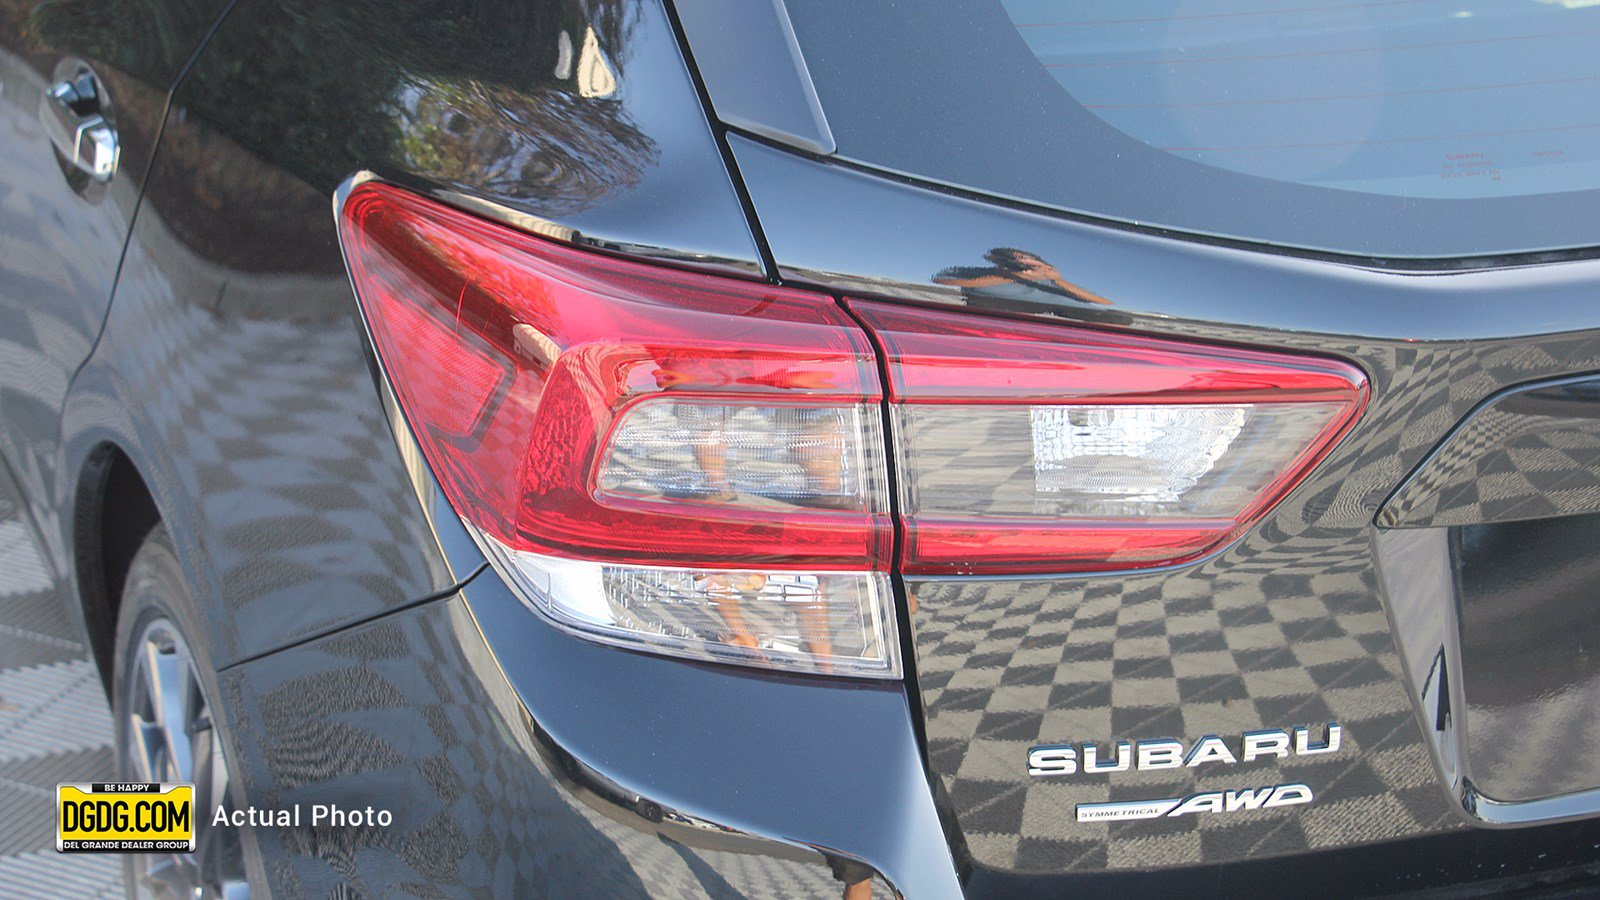 New 2020 Subaru Impreza 2.0i Limited Package